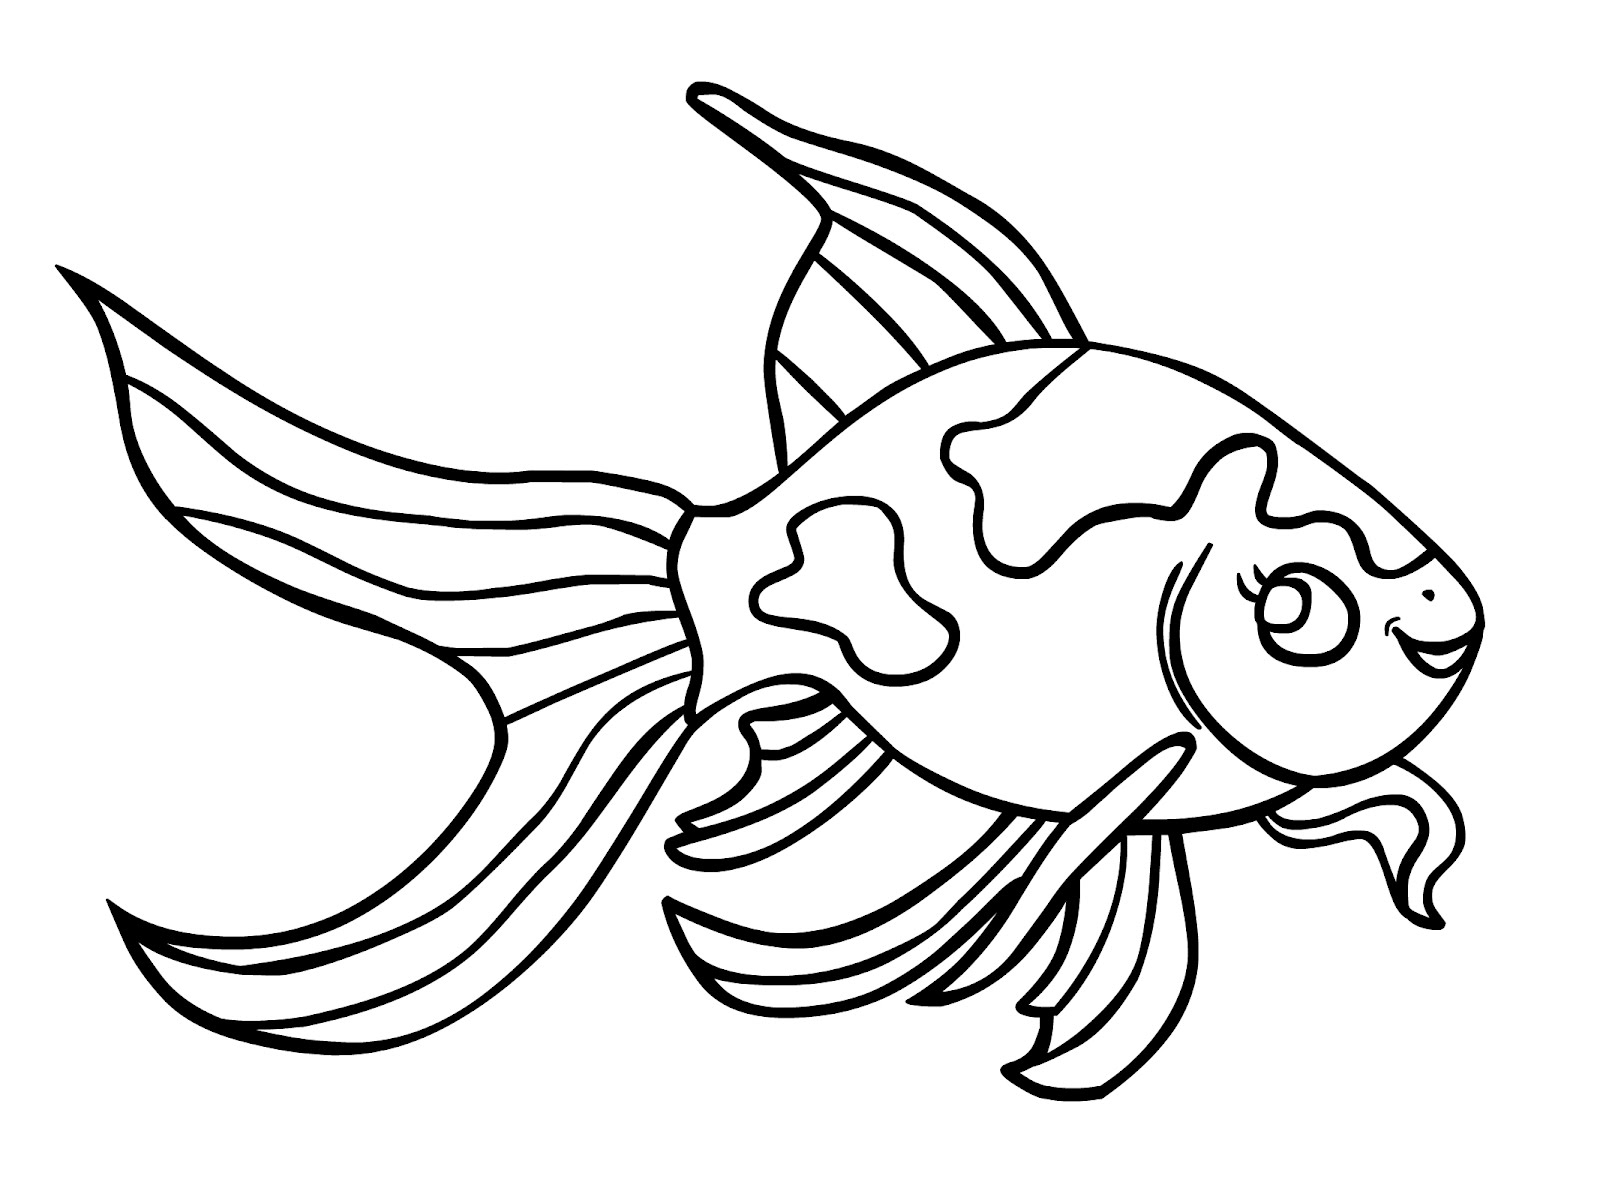 fish to color print download cute and educative fish coloring pages color to fish 1 1